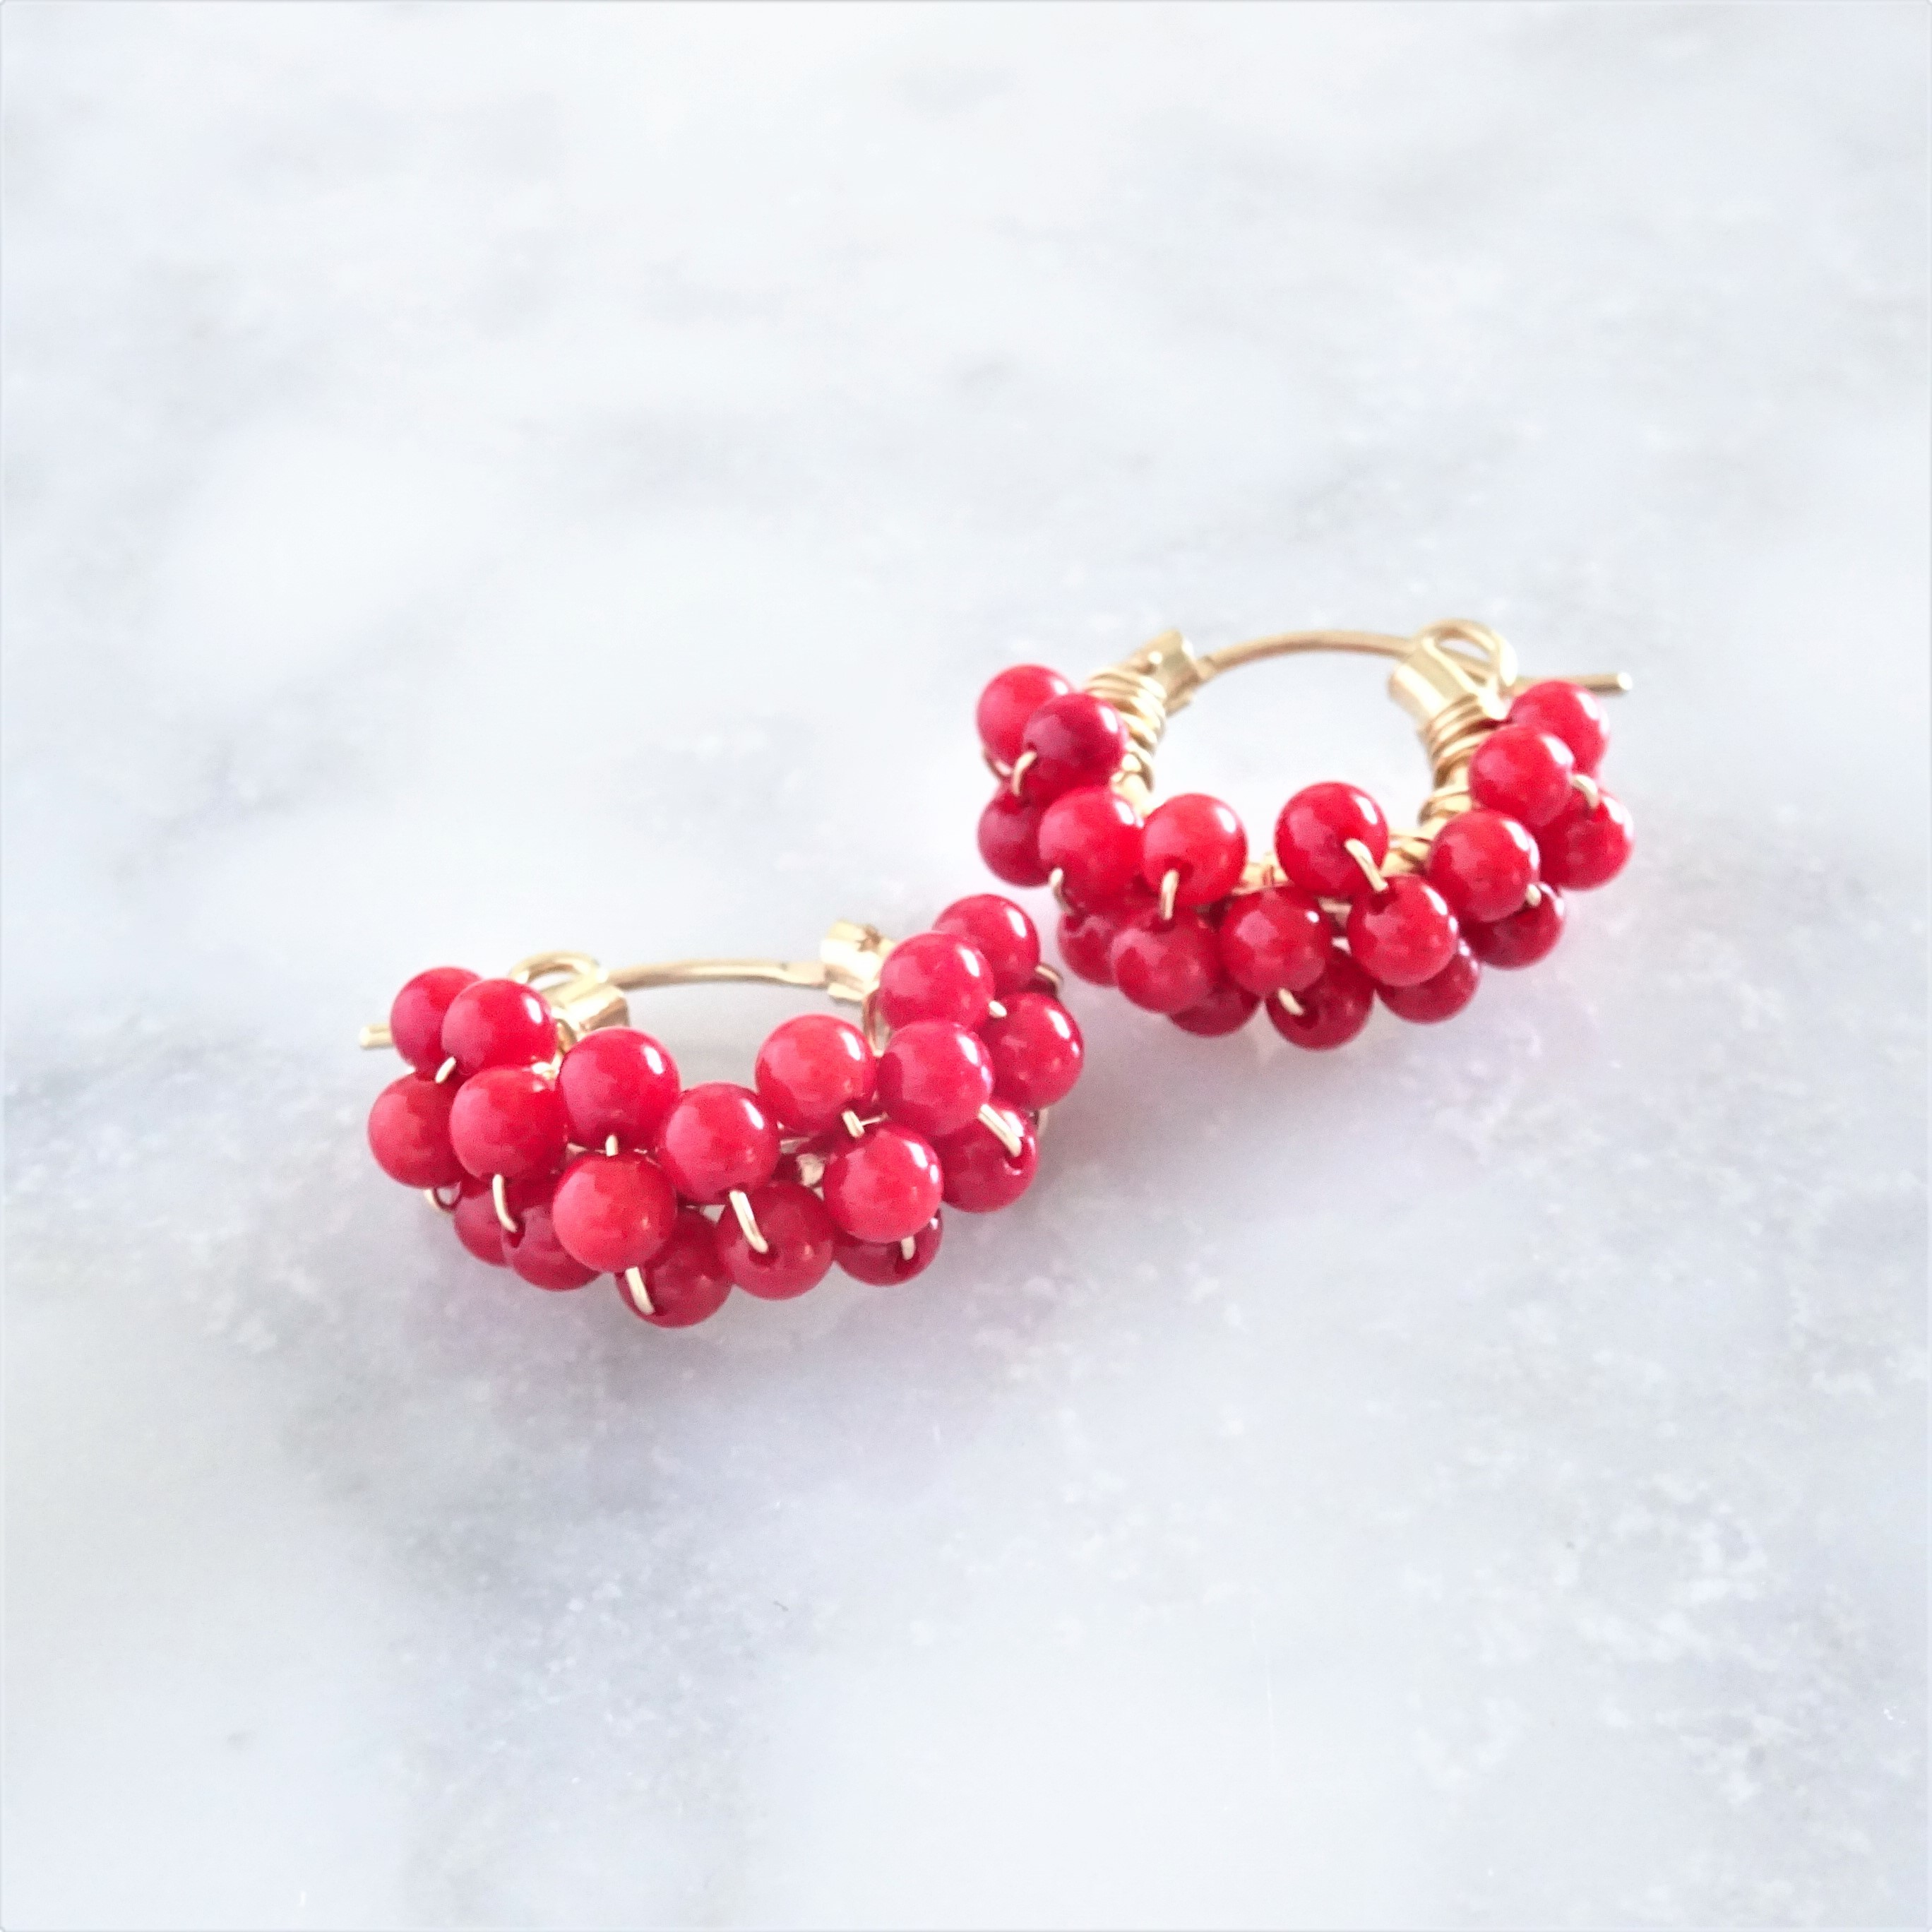 送料無料 14kgf Red Coral*wrapped pierced earring/earring